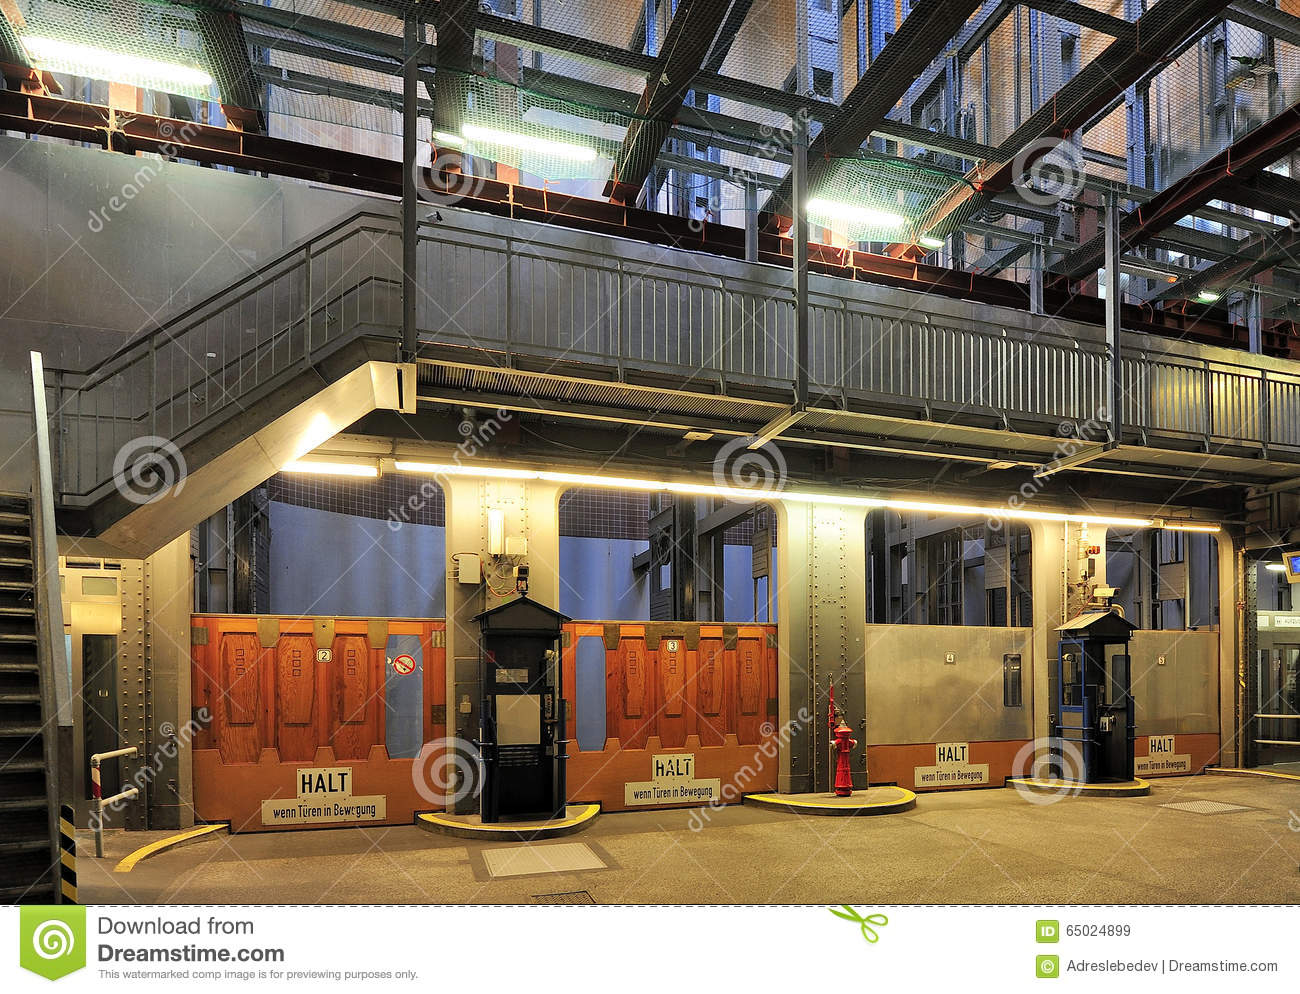 Elevators In The Old Elbe Tunnel (Elbtunnel), Hamburg, Germany.